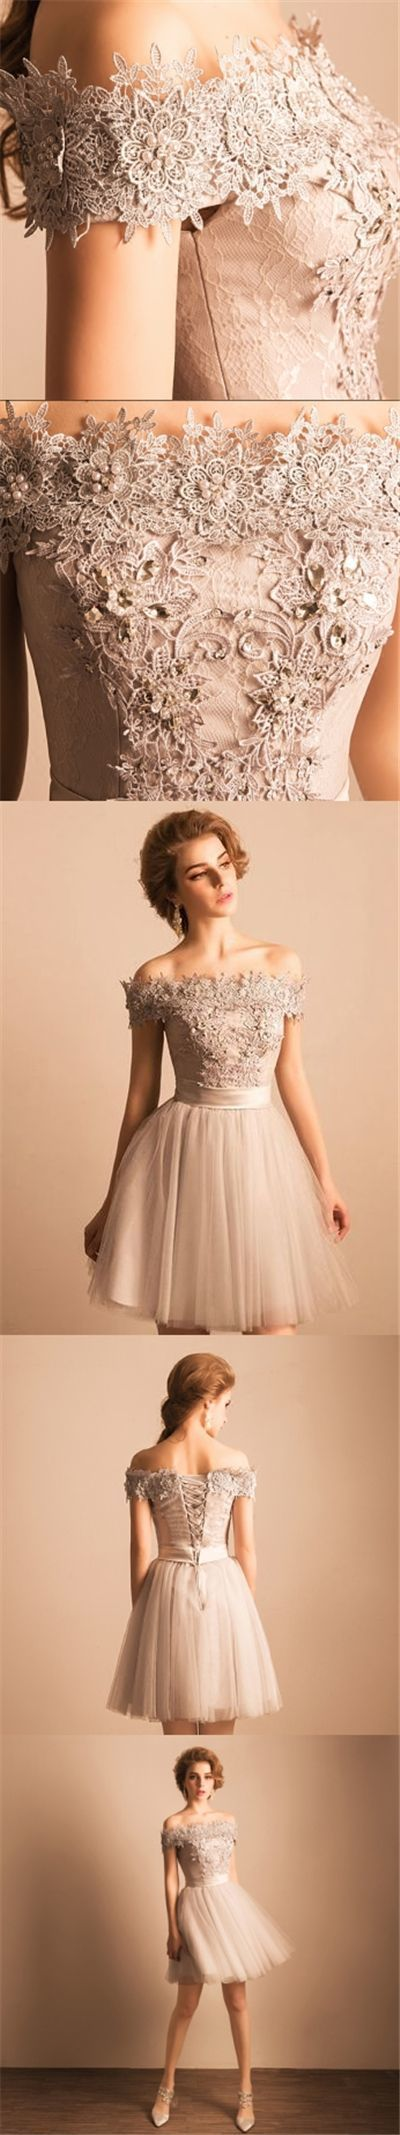 Homecoming dresses offtheshoulder lace short prom dress party